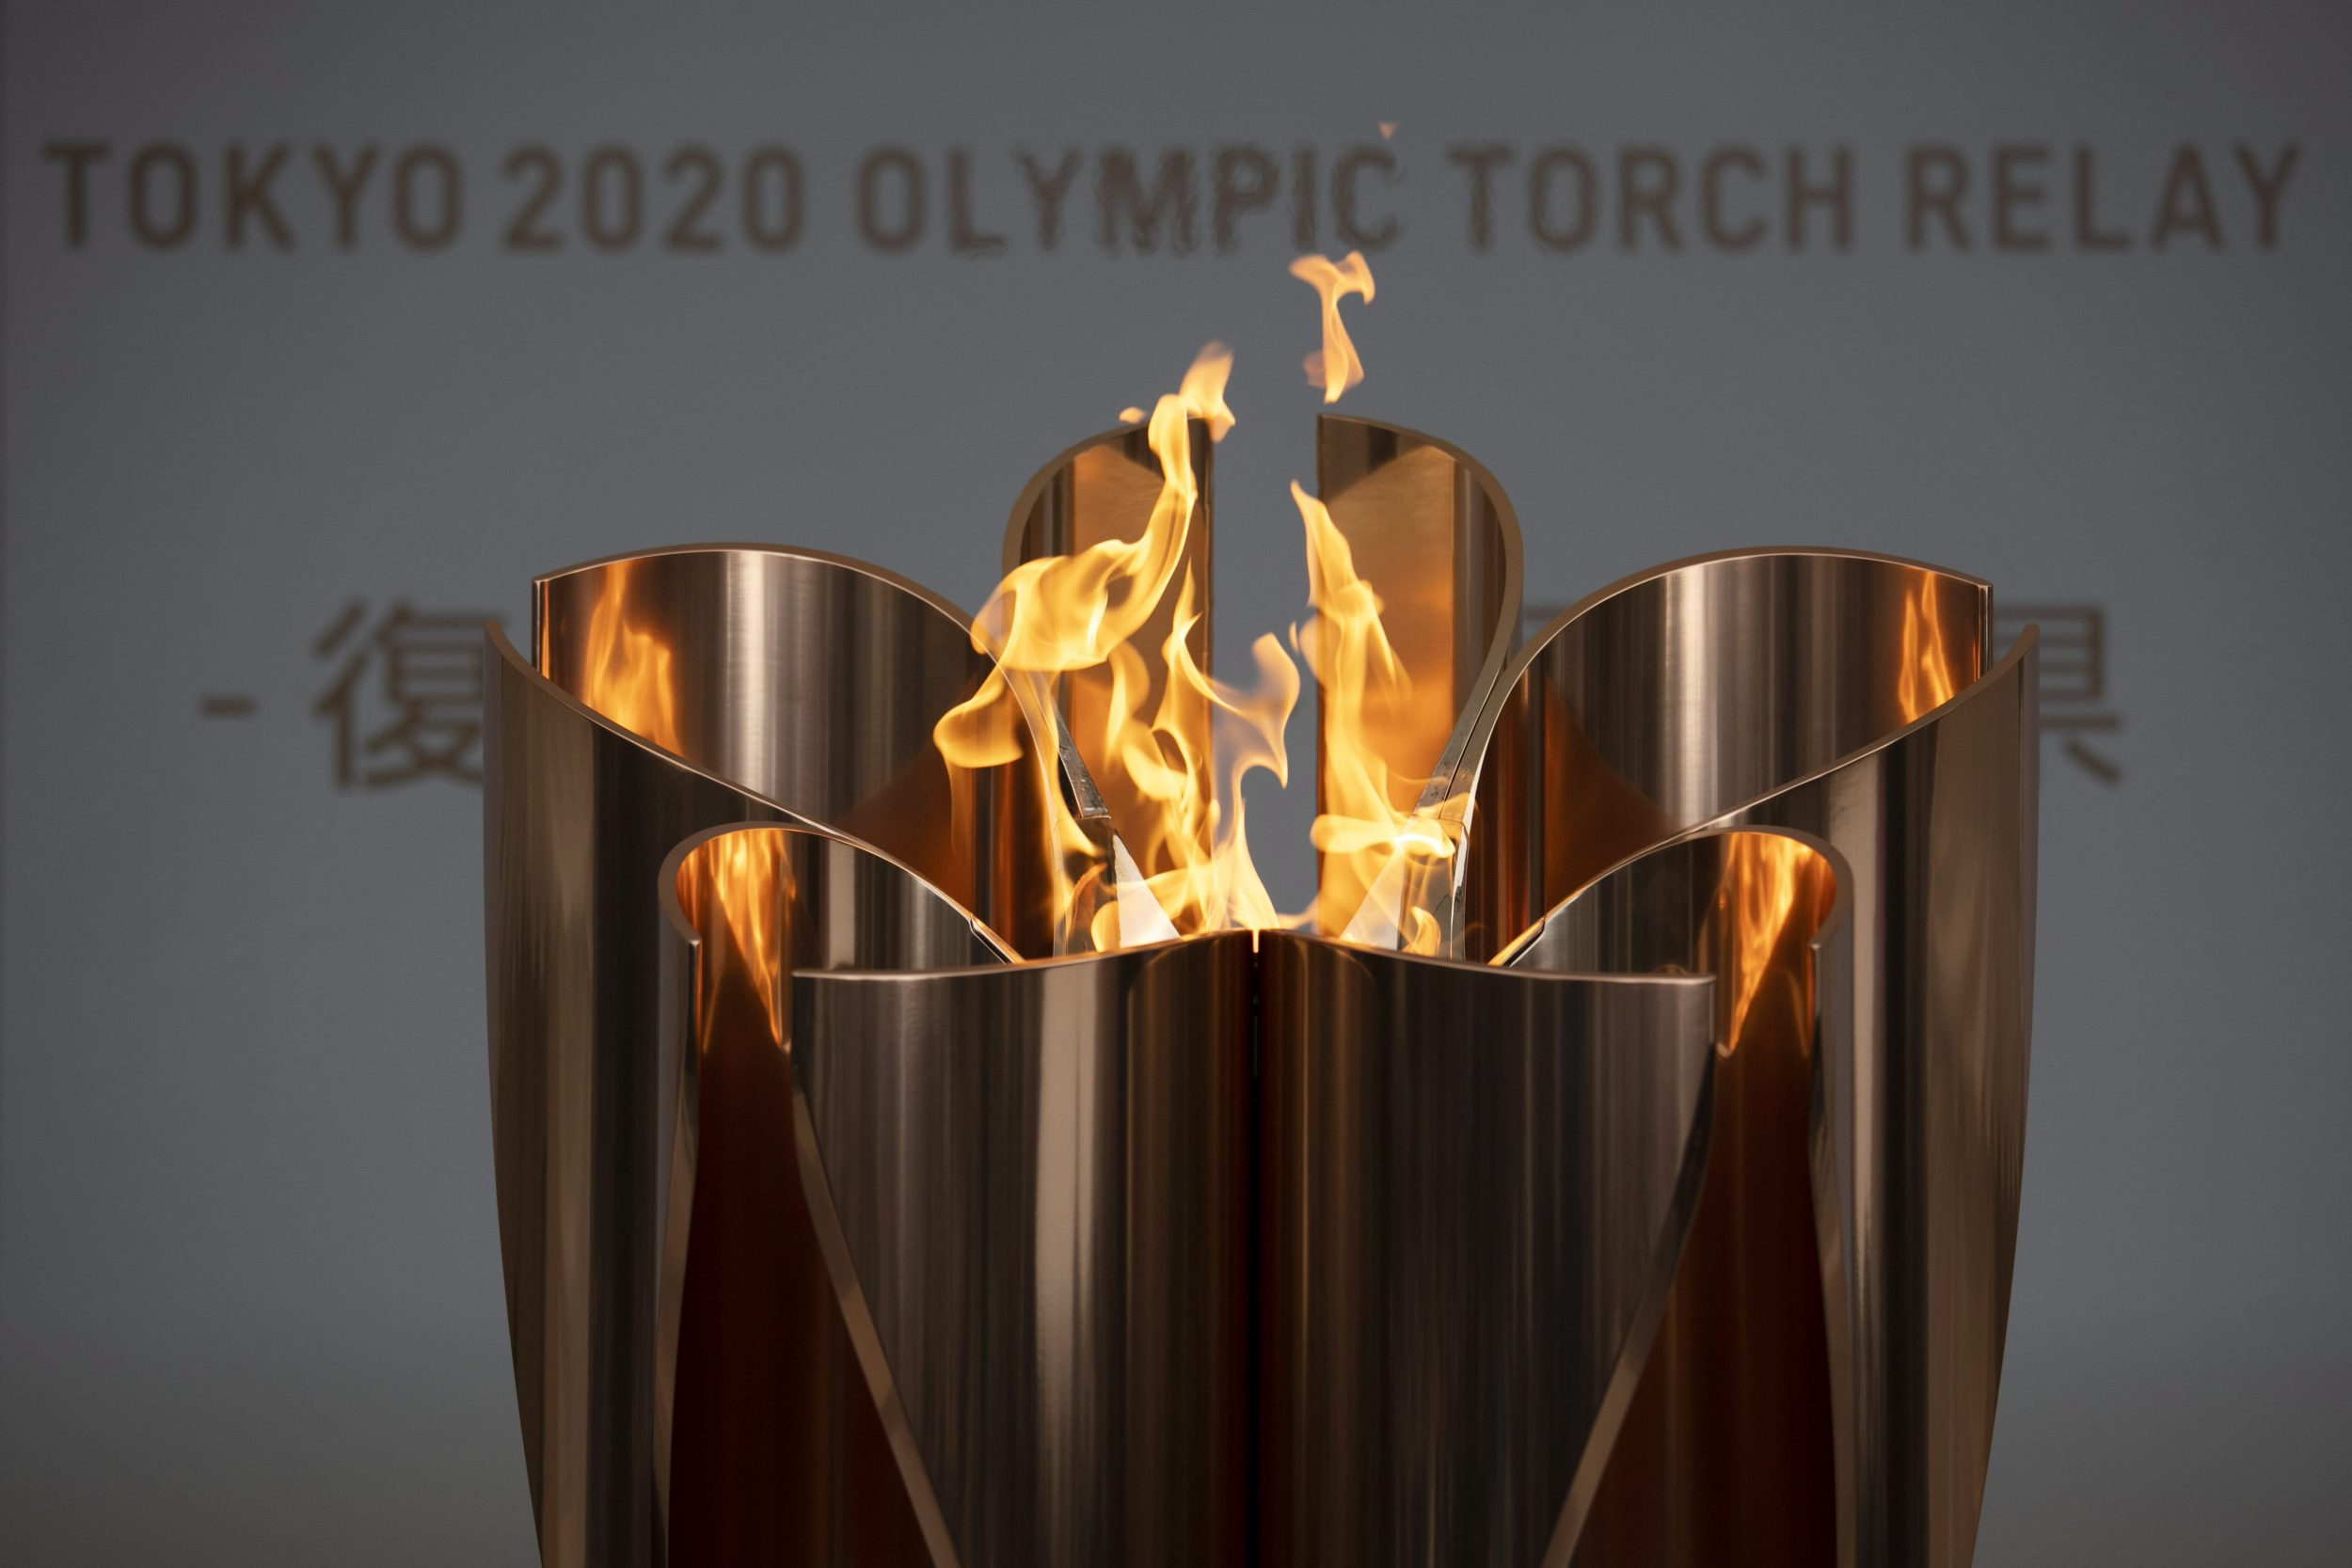 The Tokyo 2020 Olympic flame burns during the postponement of the Games